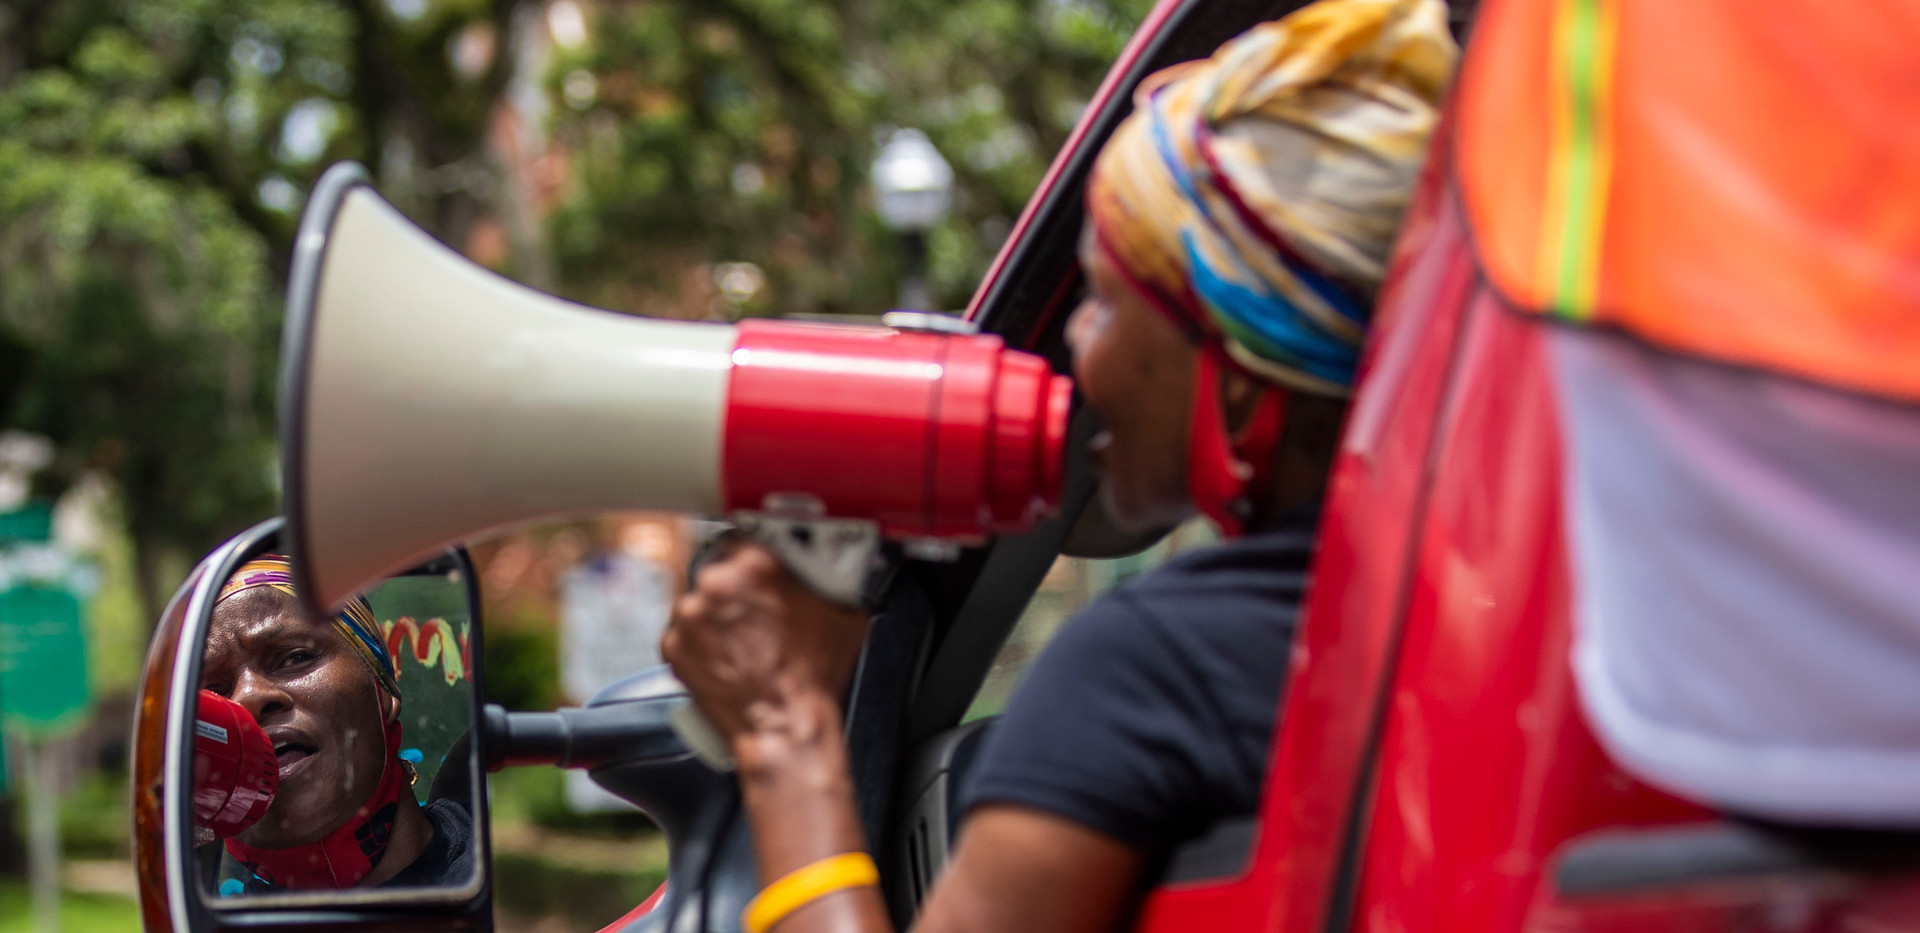 Trish Brown, a member of the Tallahassee Community Action Committee, shouts chants into her megaphone as she leads protesters with her truck through downtown Tallahassee on Thursday, July 9, 2020.